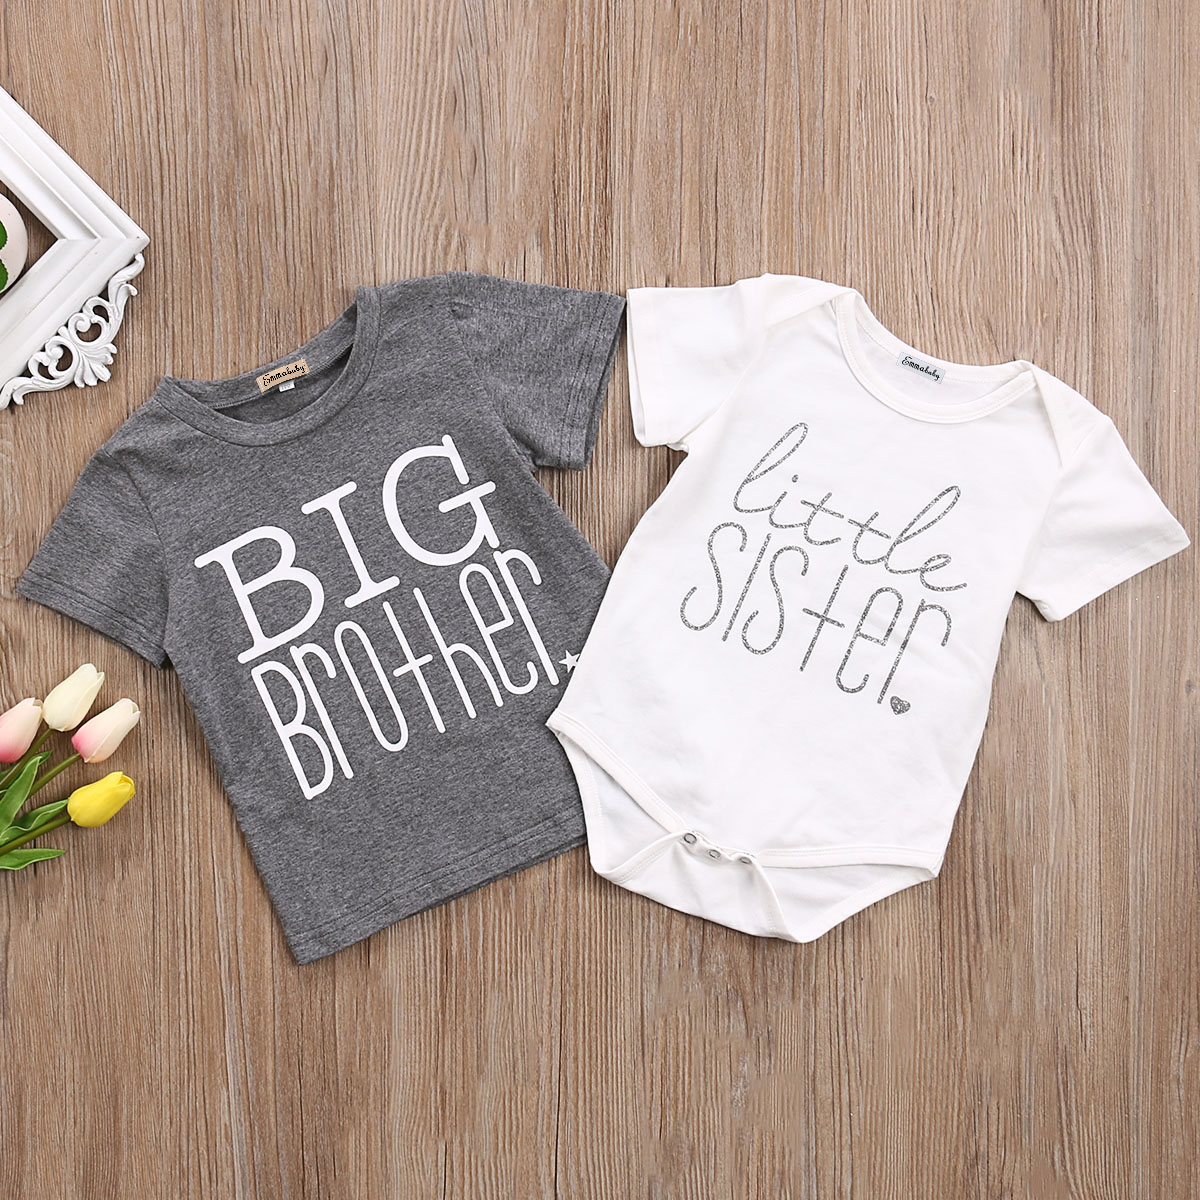 Emmababy T-Shirt Tops Bodysuit Short-Sleeve Letter Matching Sister Fynny Cotton And Clthoes title=